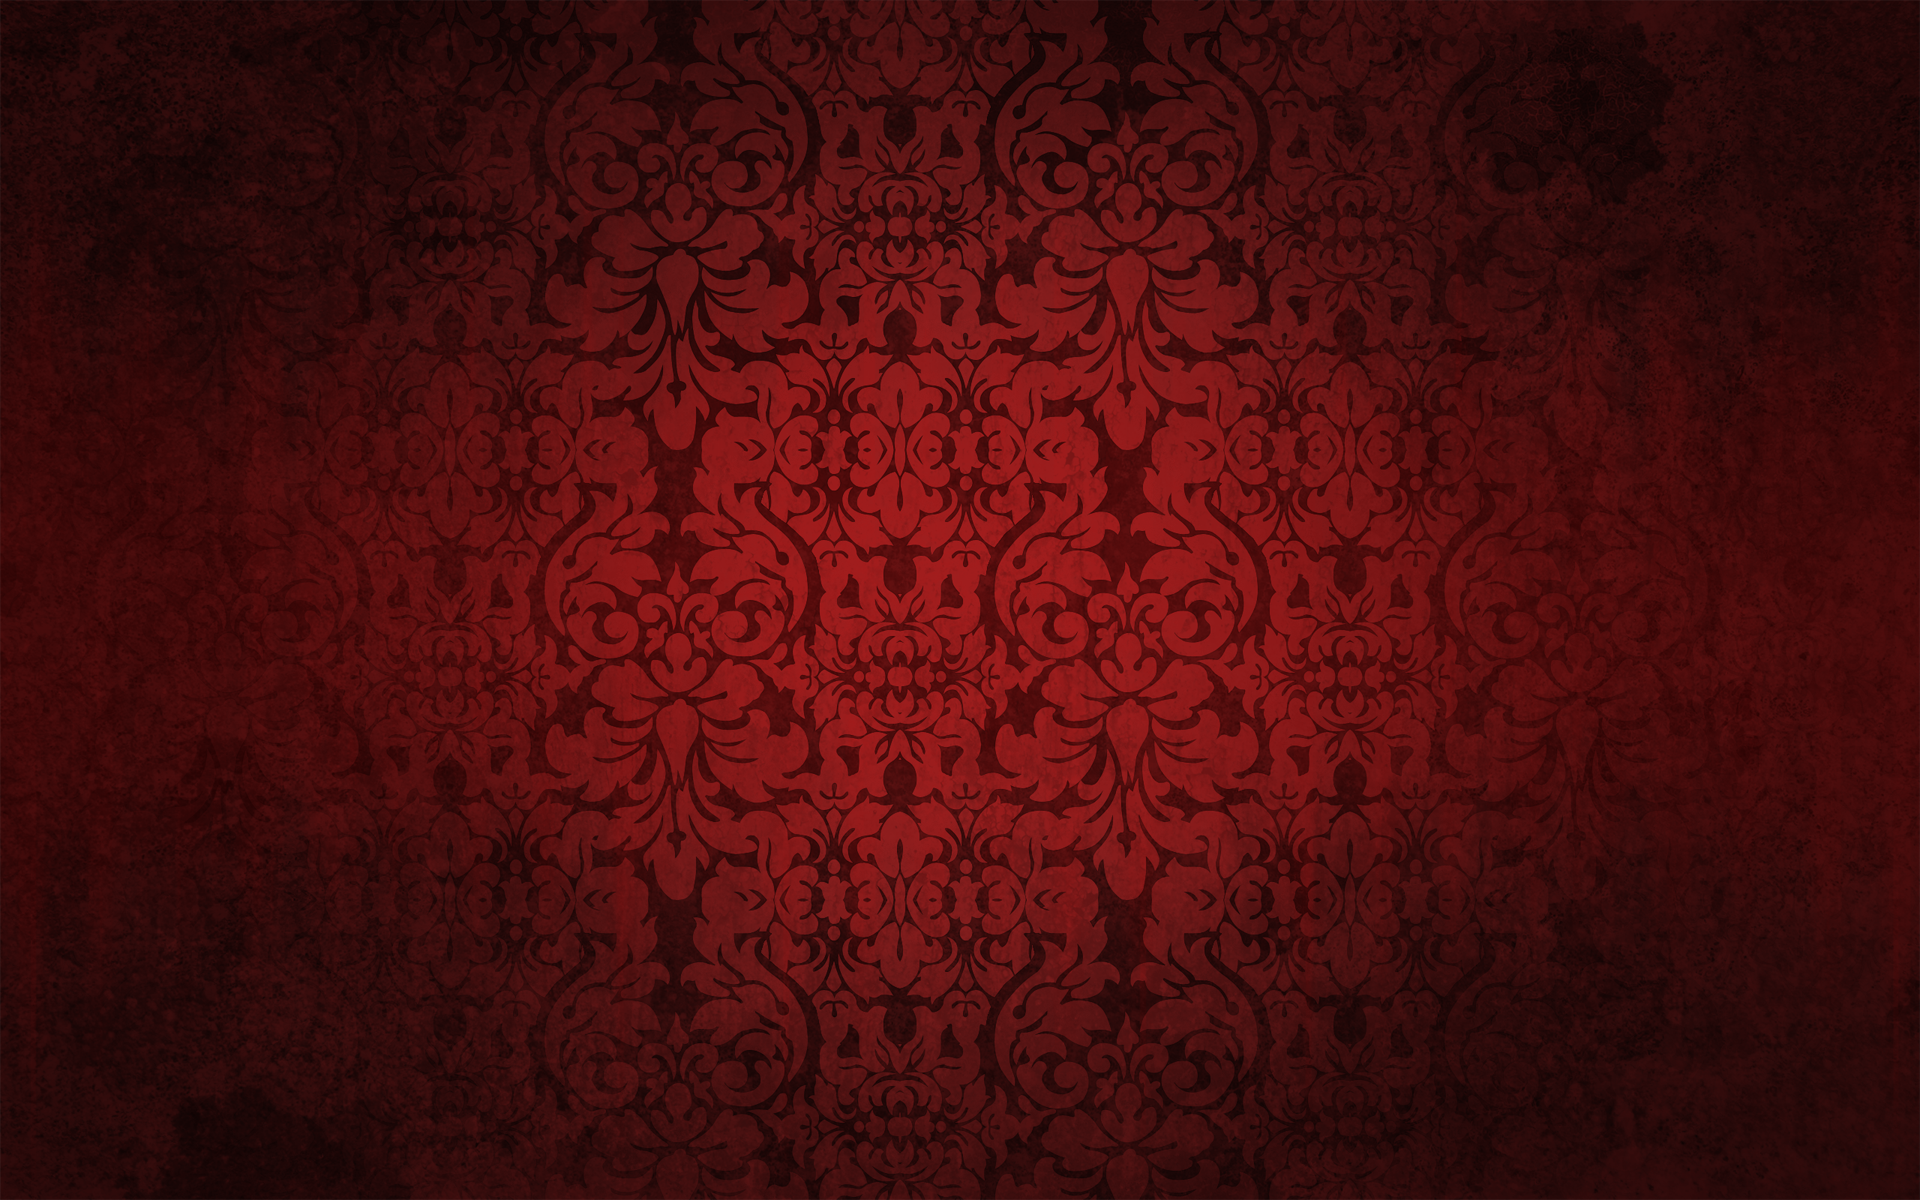 10 Vintage Red Backgrounds HQ Backgrounds FreeCreatives : High Res Black and Red Vintage Wallpapers from www.freecreatives.com size 1920 x 1200 png 2214kB